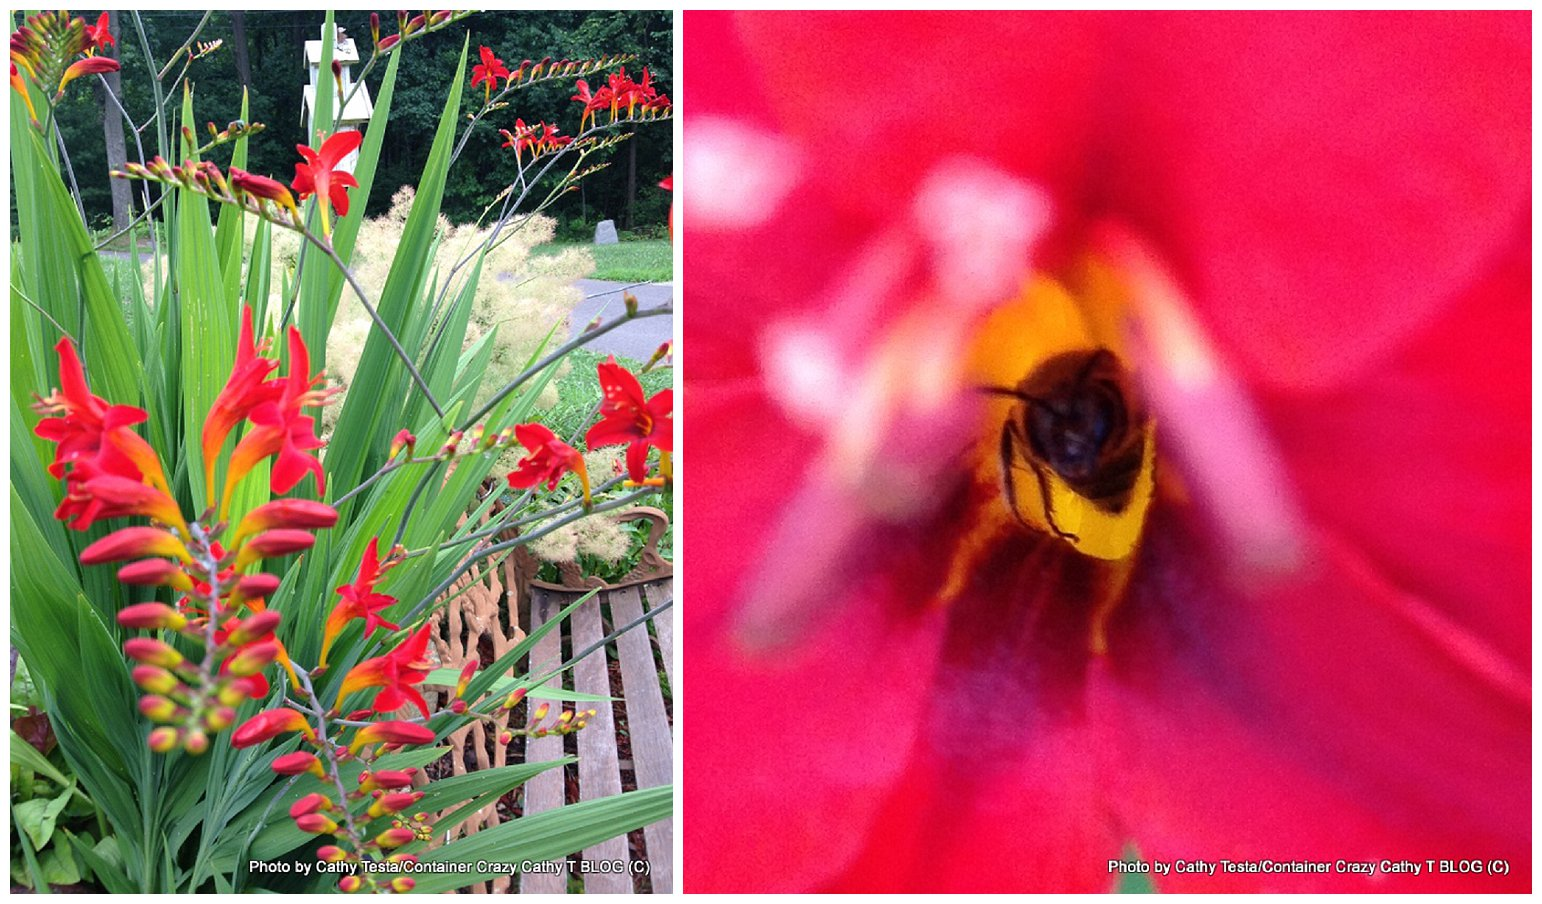 Flashback Friday Crocosmia Perennial With Fire Red Blooms In A Power Plant Layout 0004